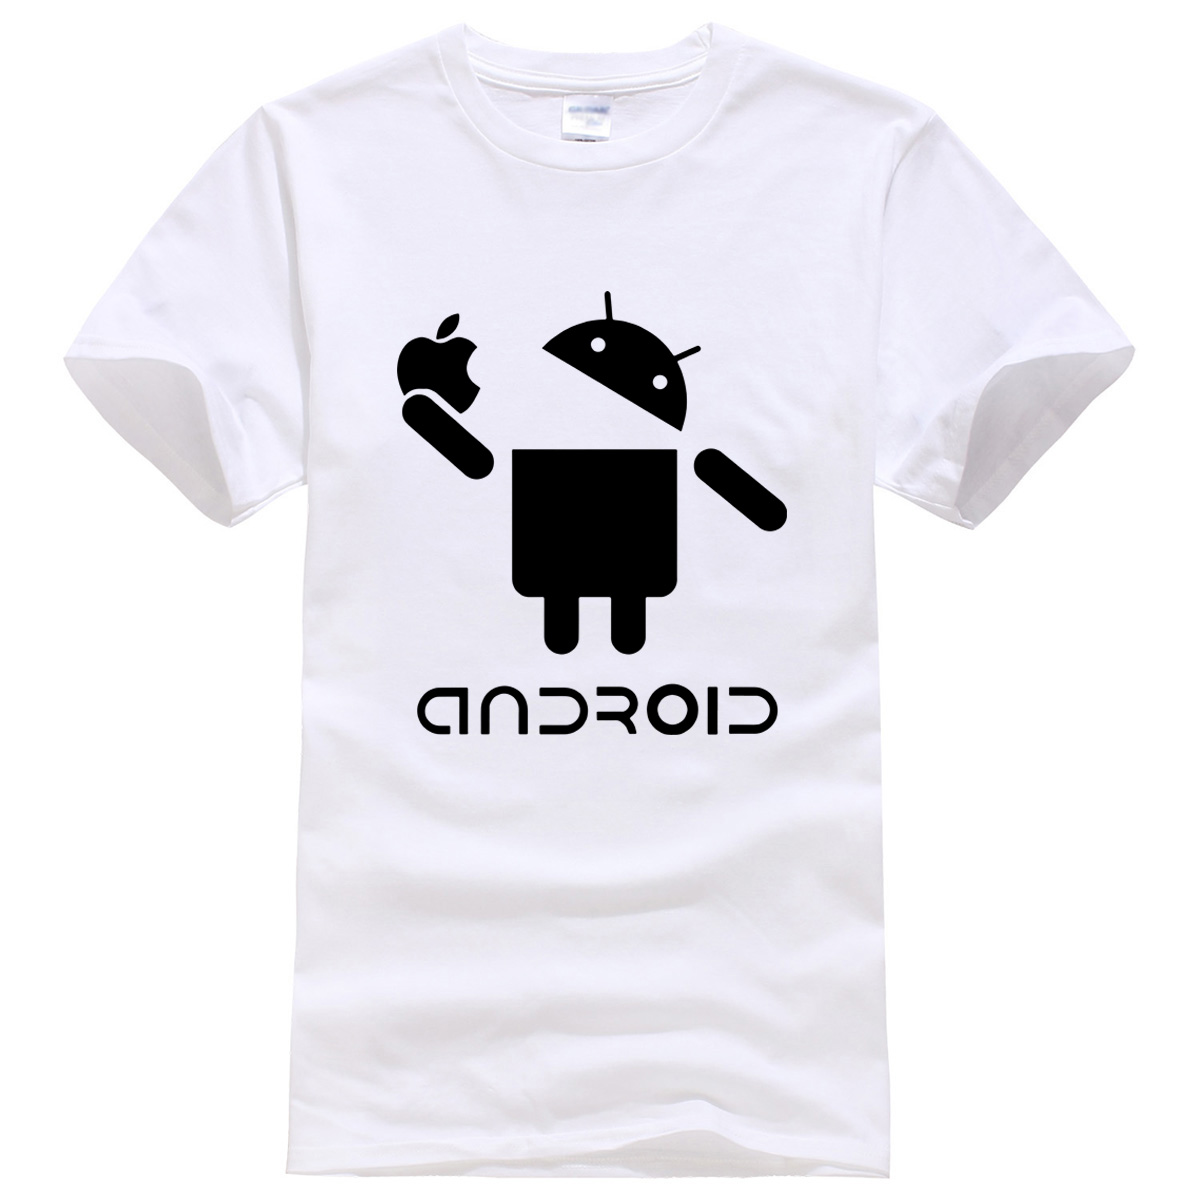 Android character pattern summer 2017 T-shirt cotton new hot sale men's T-shirts fashion casual t shirt harajuku crossfit brand